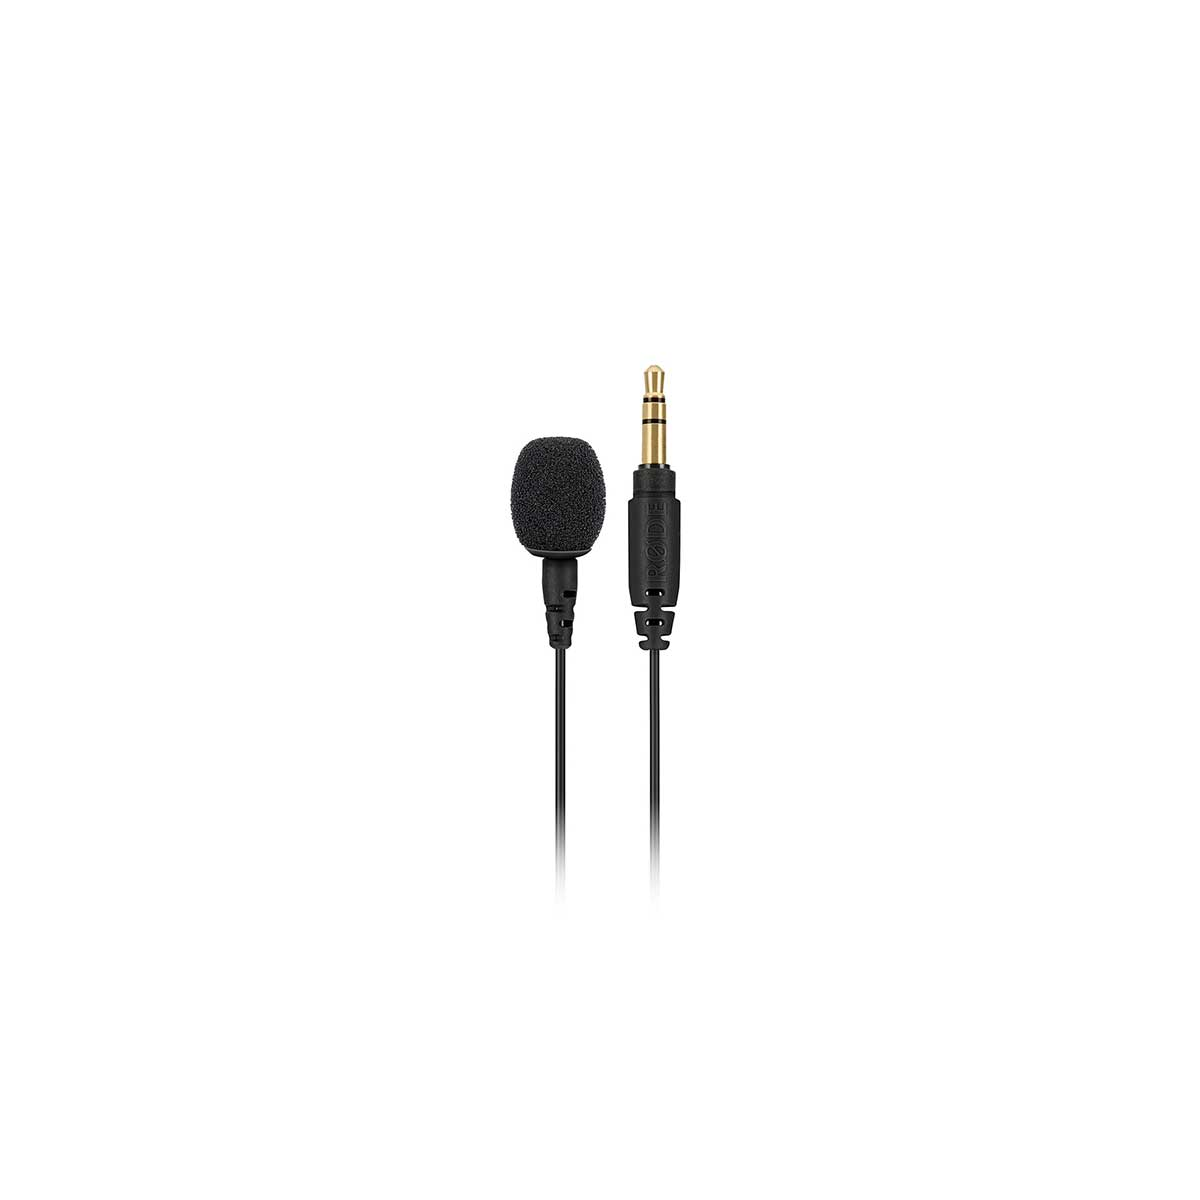 RØDE Lavalier GO lavalier microphone with 3.5mm TRS jack Black